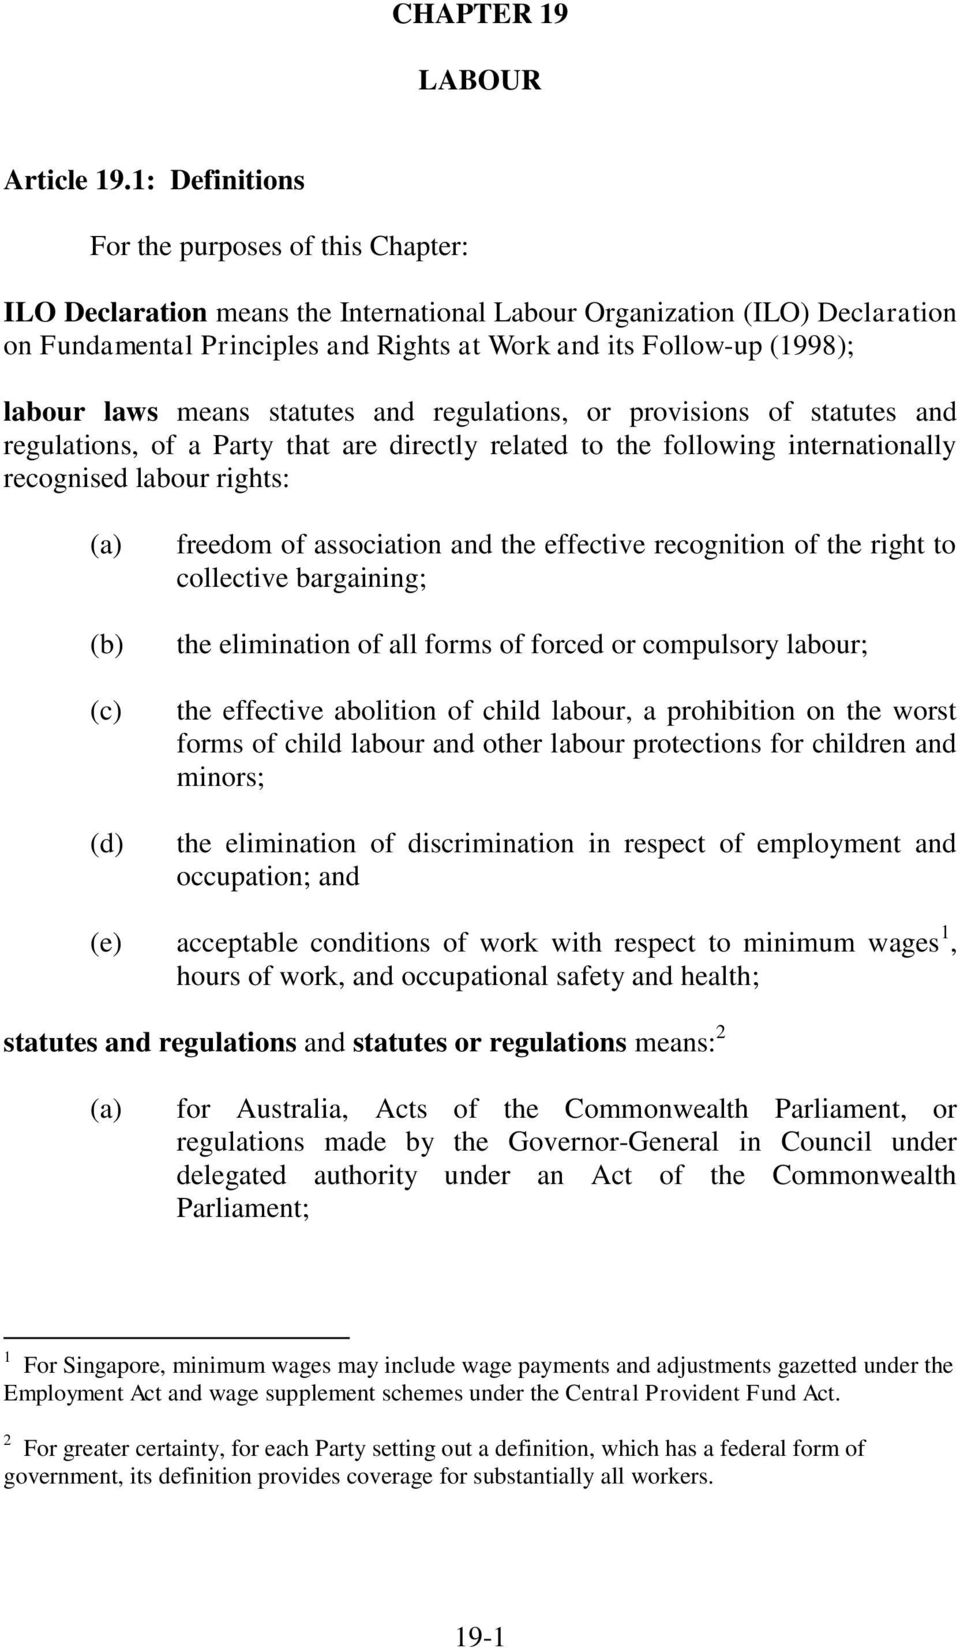 labour laws means statutes and regulations, or provisions of statutes and regulations, of a Party that are directly related to the following internationally recognised labour rights: freedom of